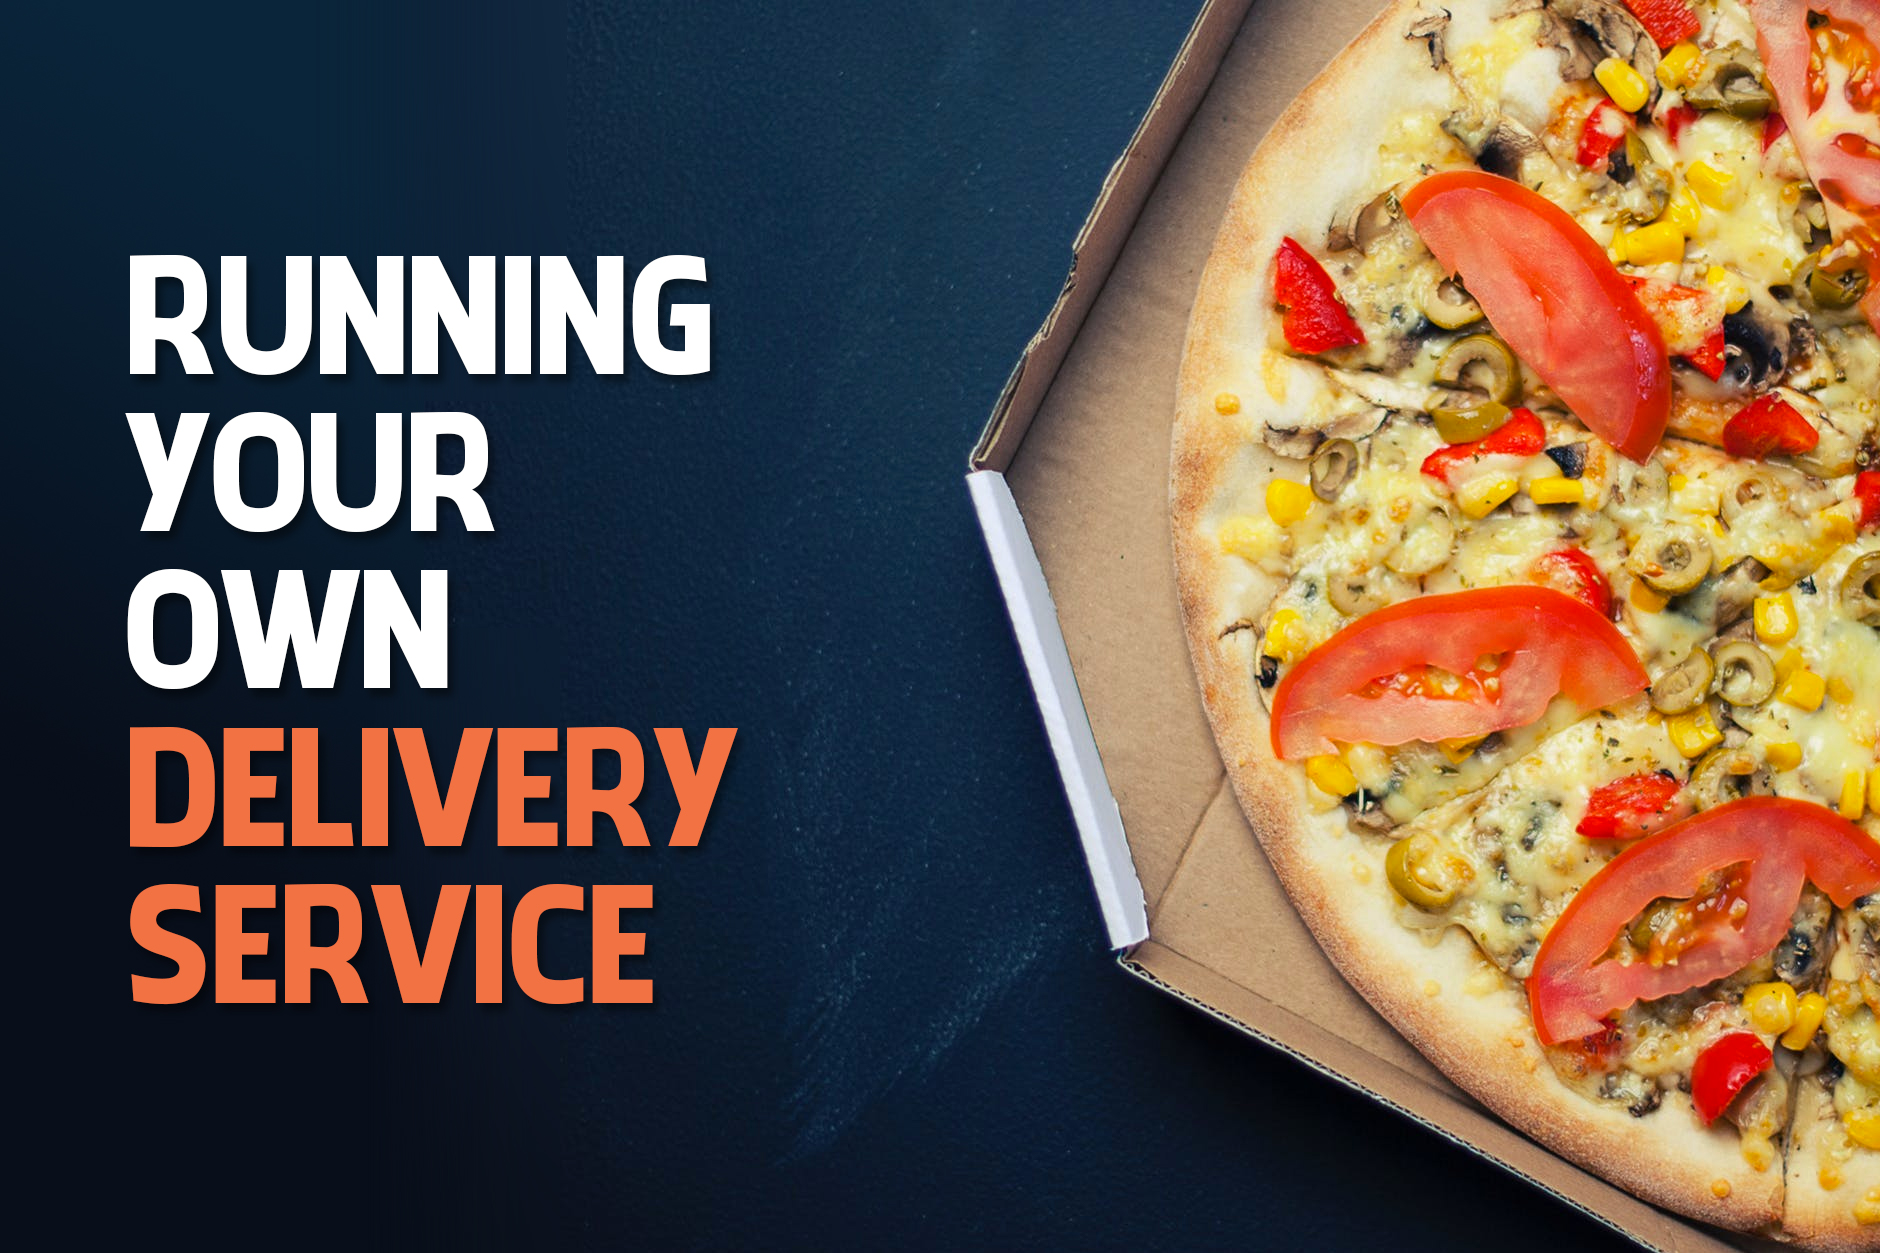 Restaurant Delivery: Running Your Own Delivery Service